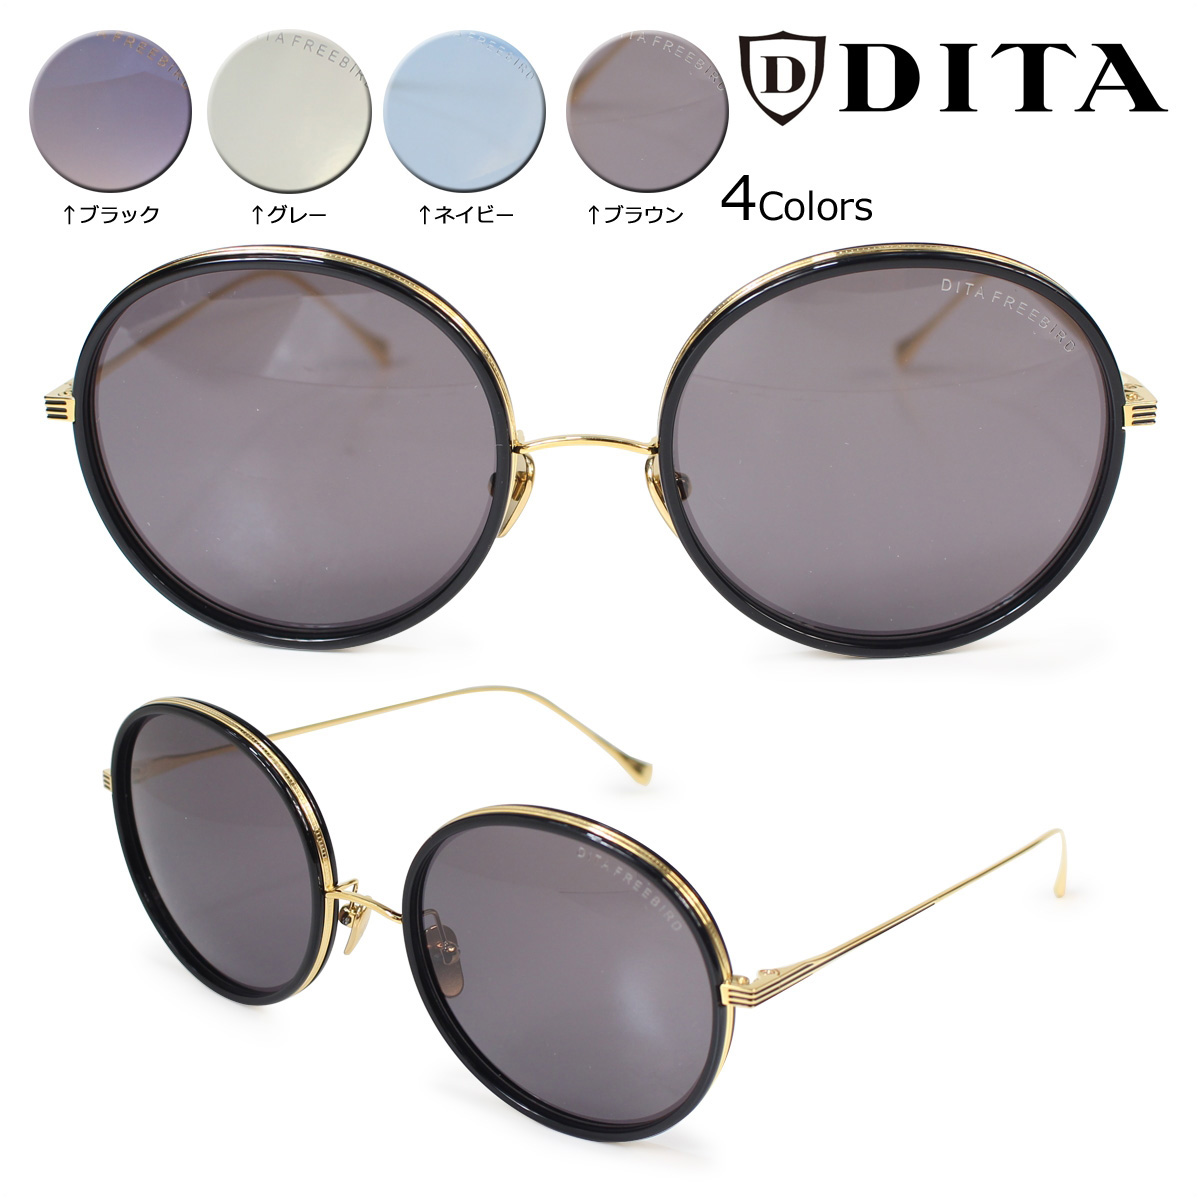 4a06a205e76a ... to design work having an element of the high style is moderate are  sunglasses used habitually by fashion celebrities of the world with  exquisiteness.